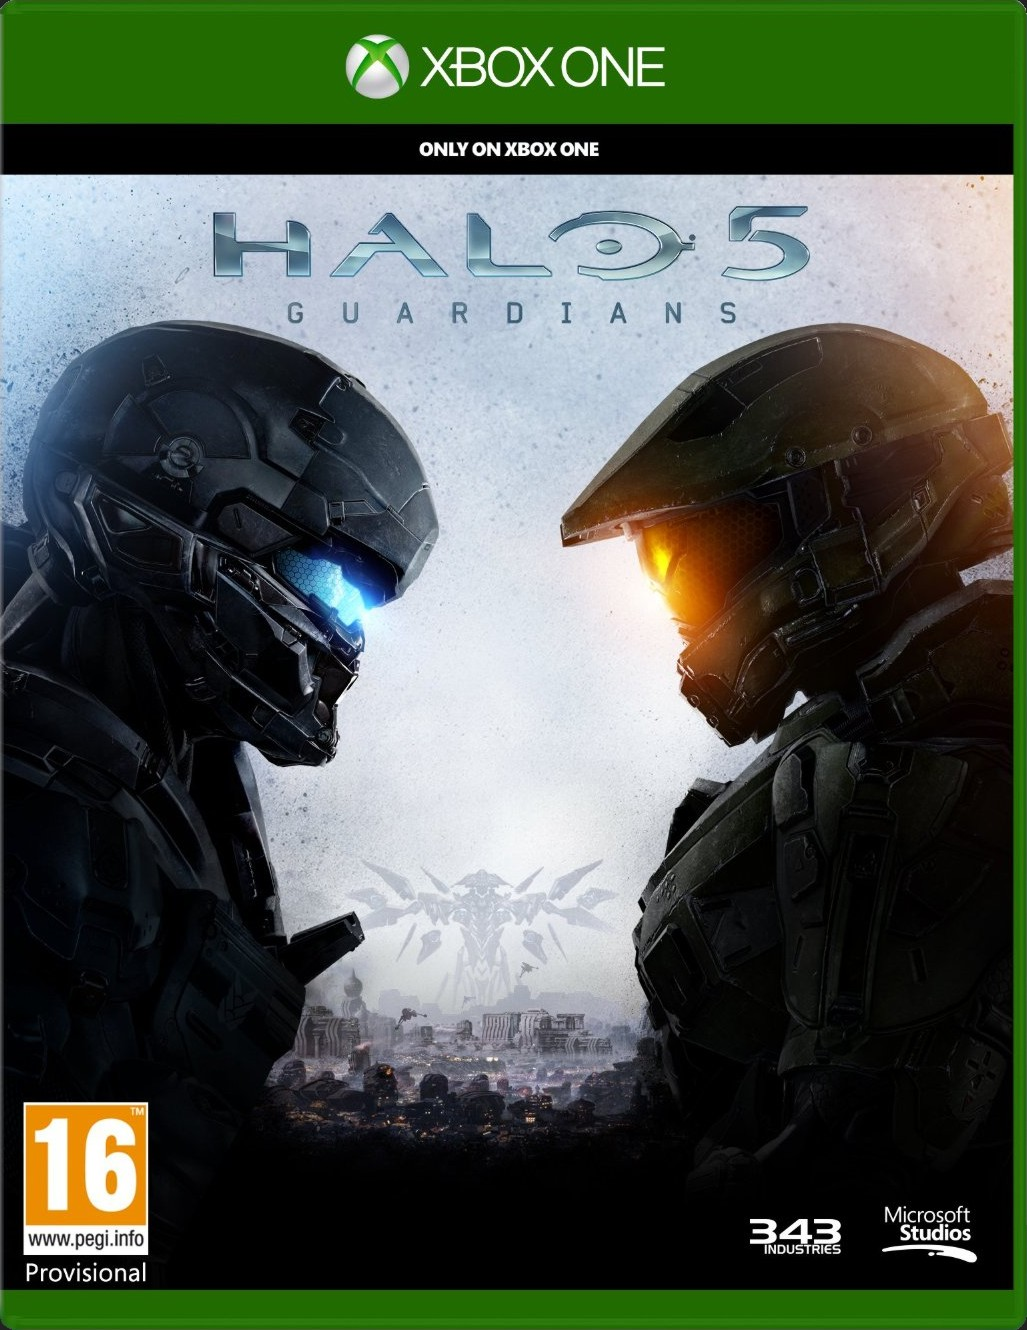 HALO 5: GUARDIANS - Xone